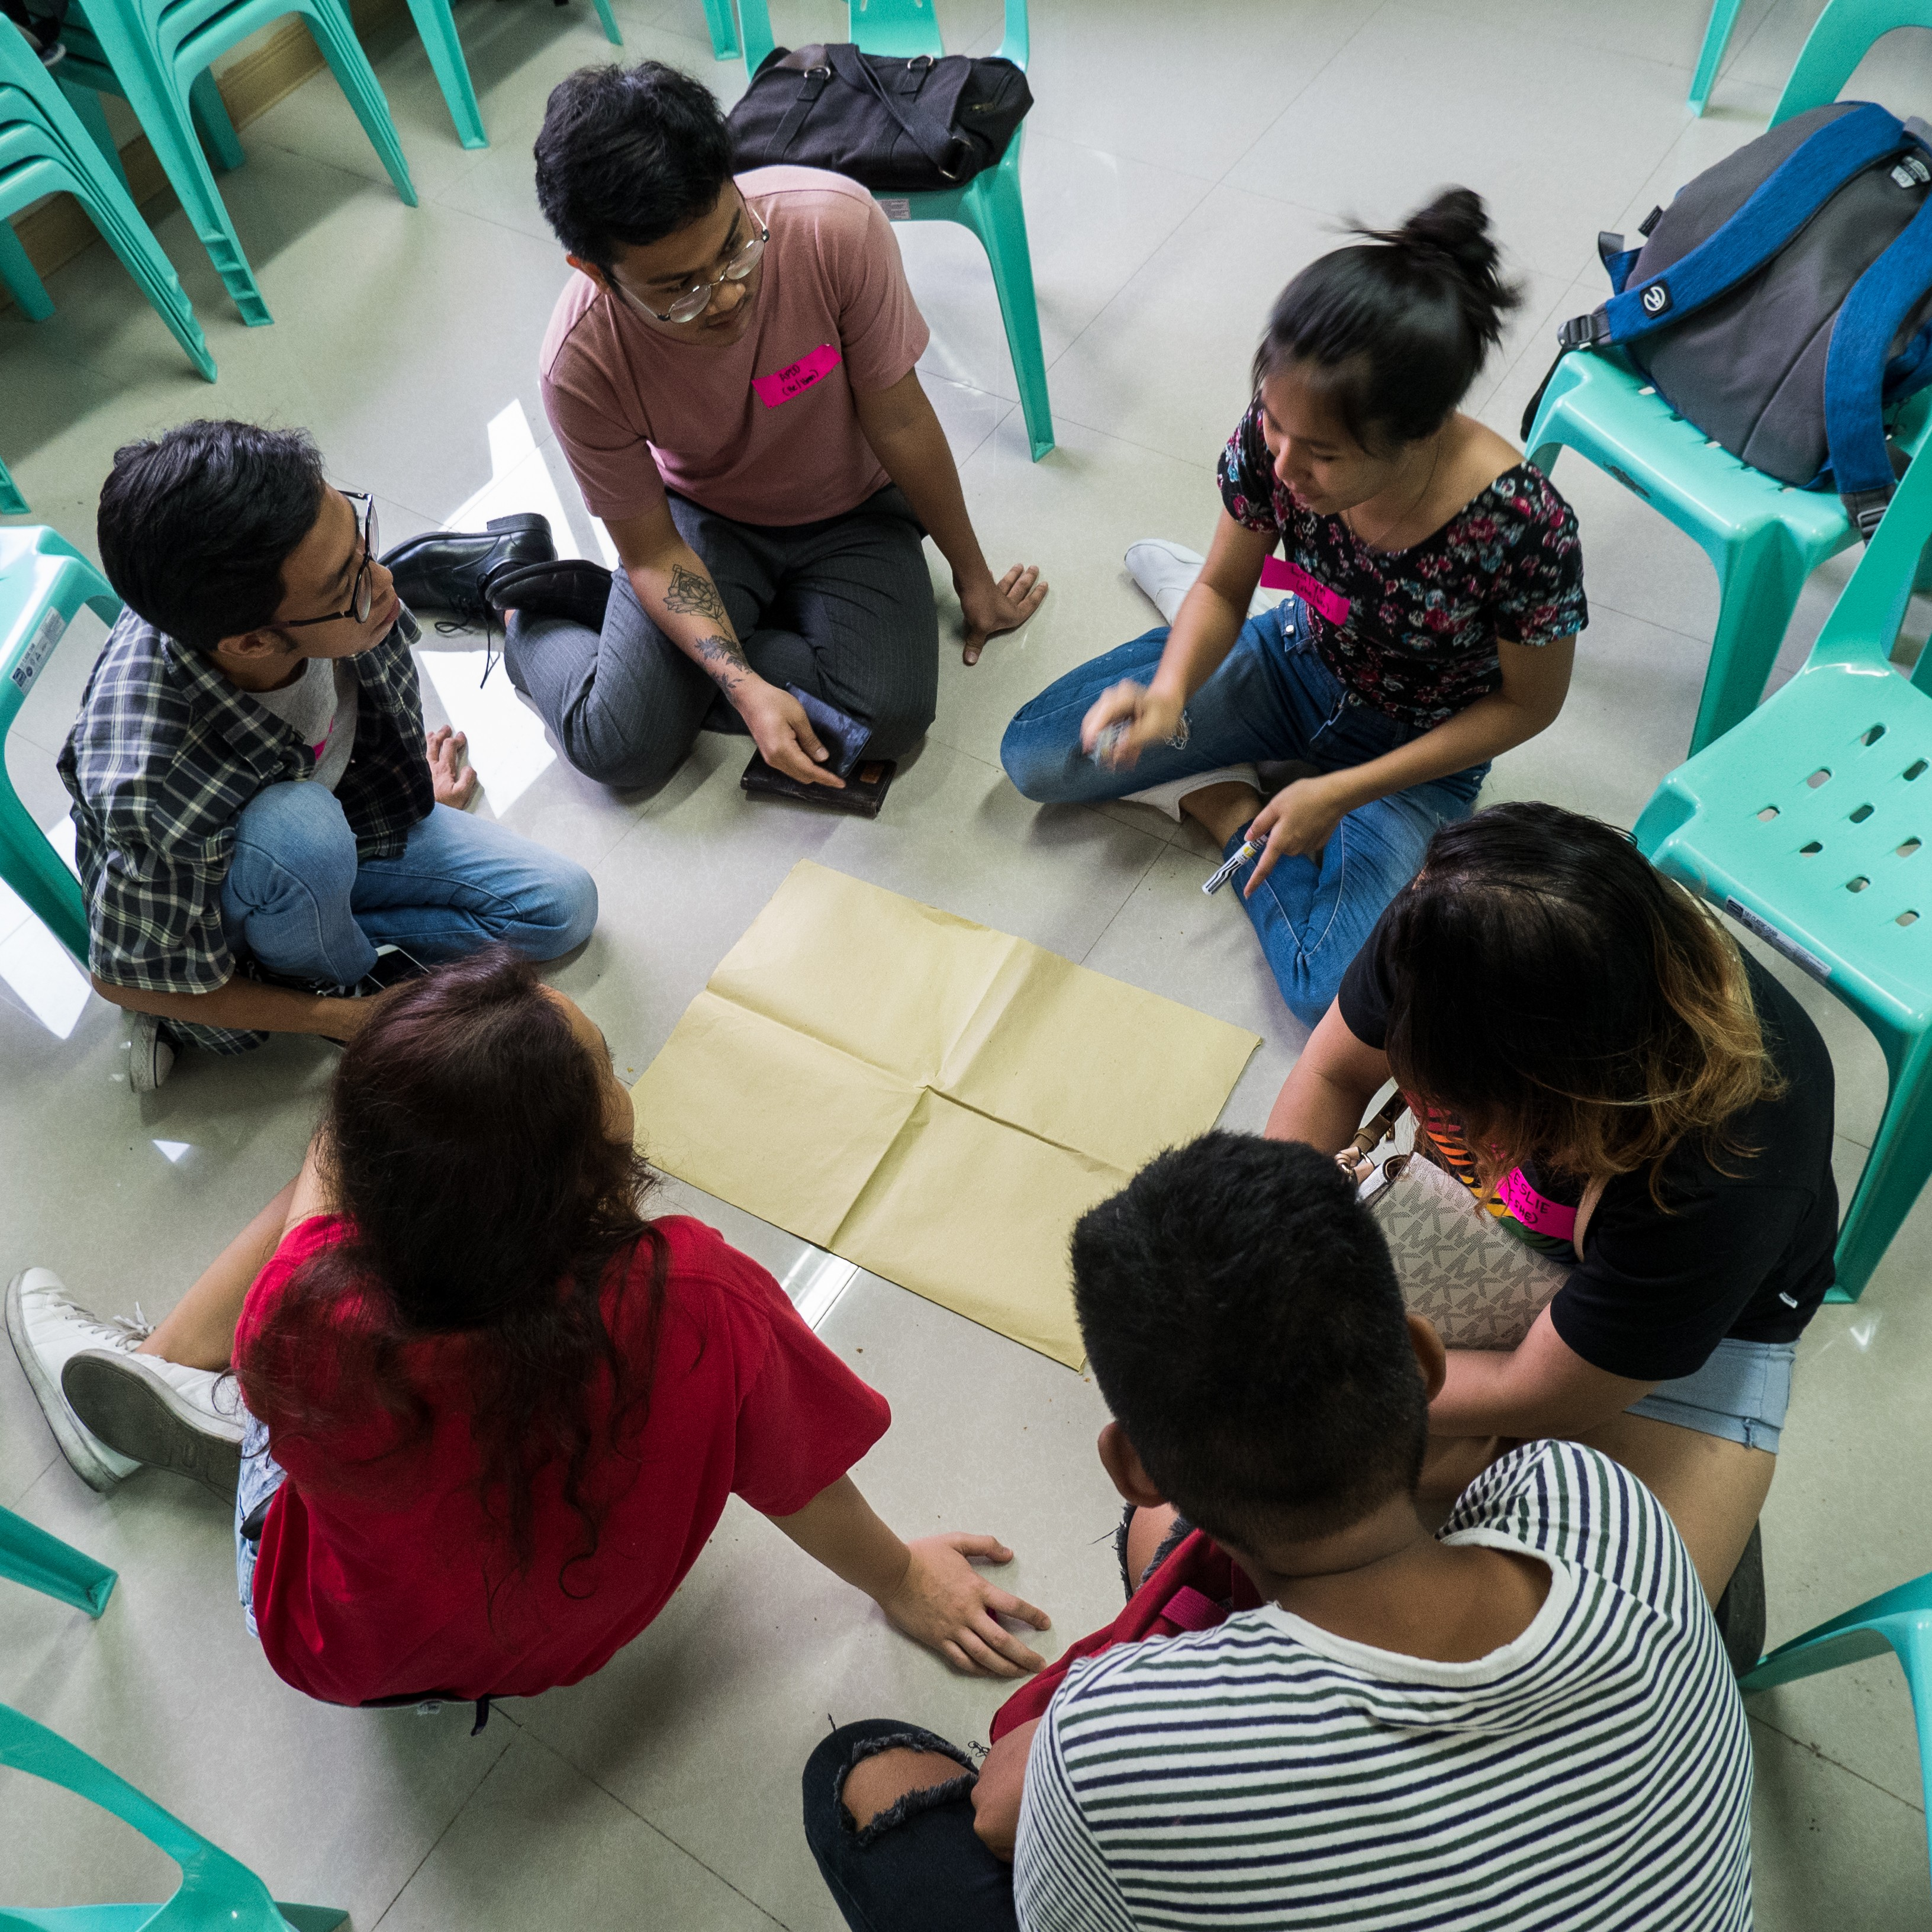 Image: Six people are in the middle of a conversation. They are seated on a floor, with a flat sheet of manila paper in between them.